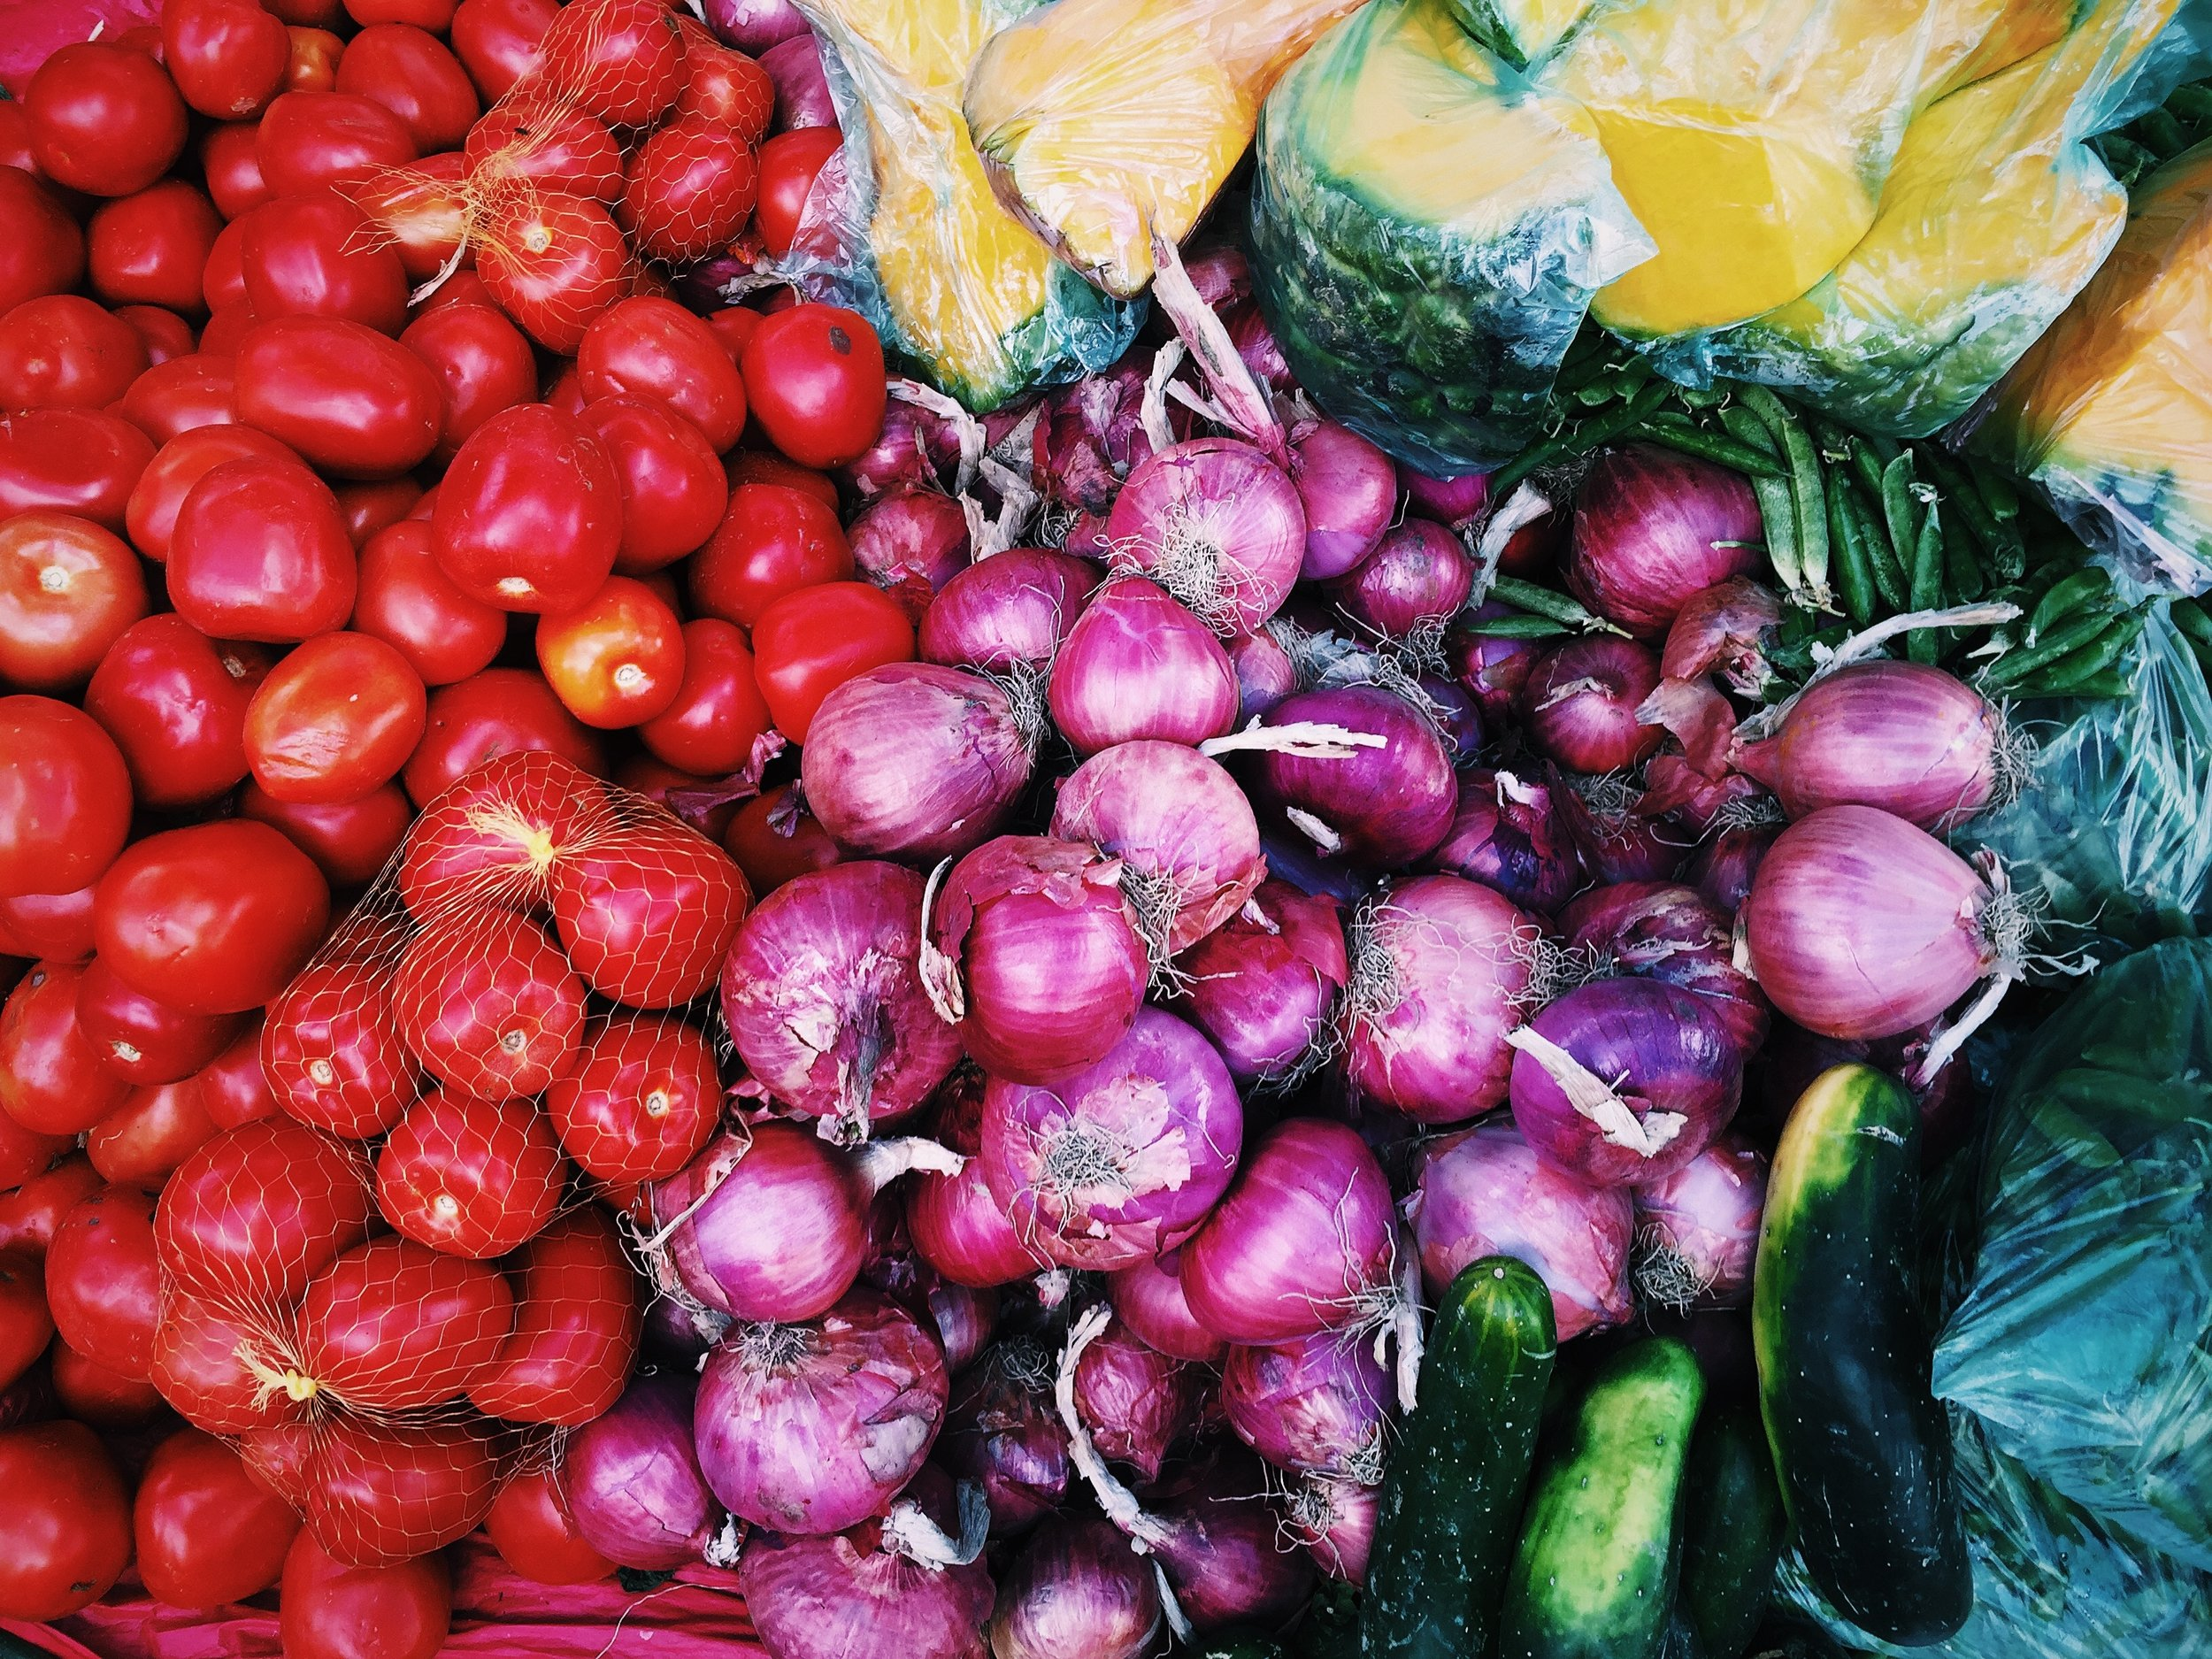 Eating plants is part of any healthy diet. Fruit, vegetables, beans, grains and nuts are your go-to plant foods. -